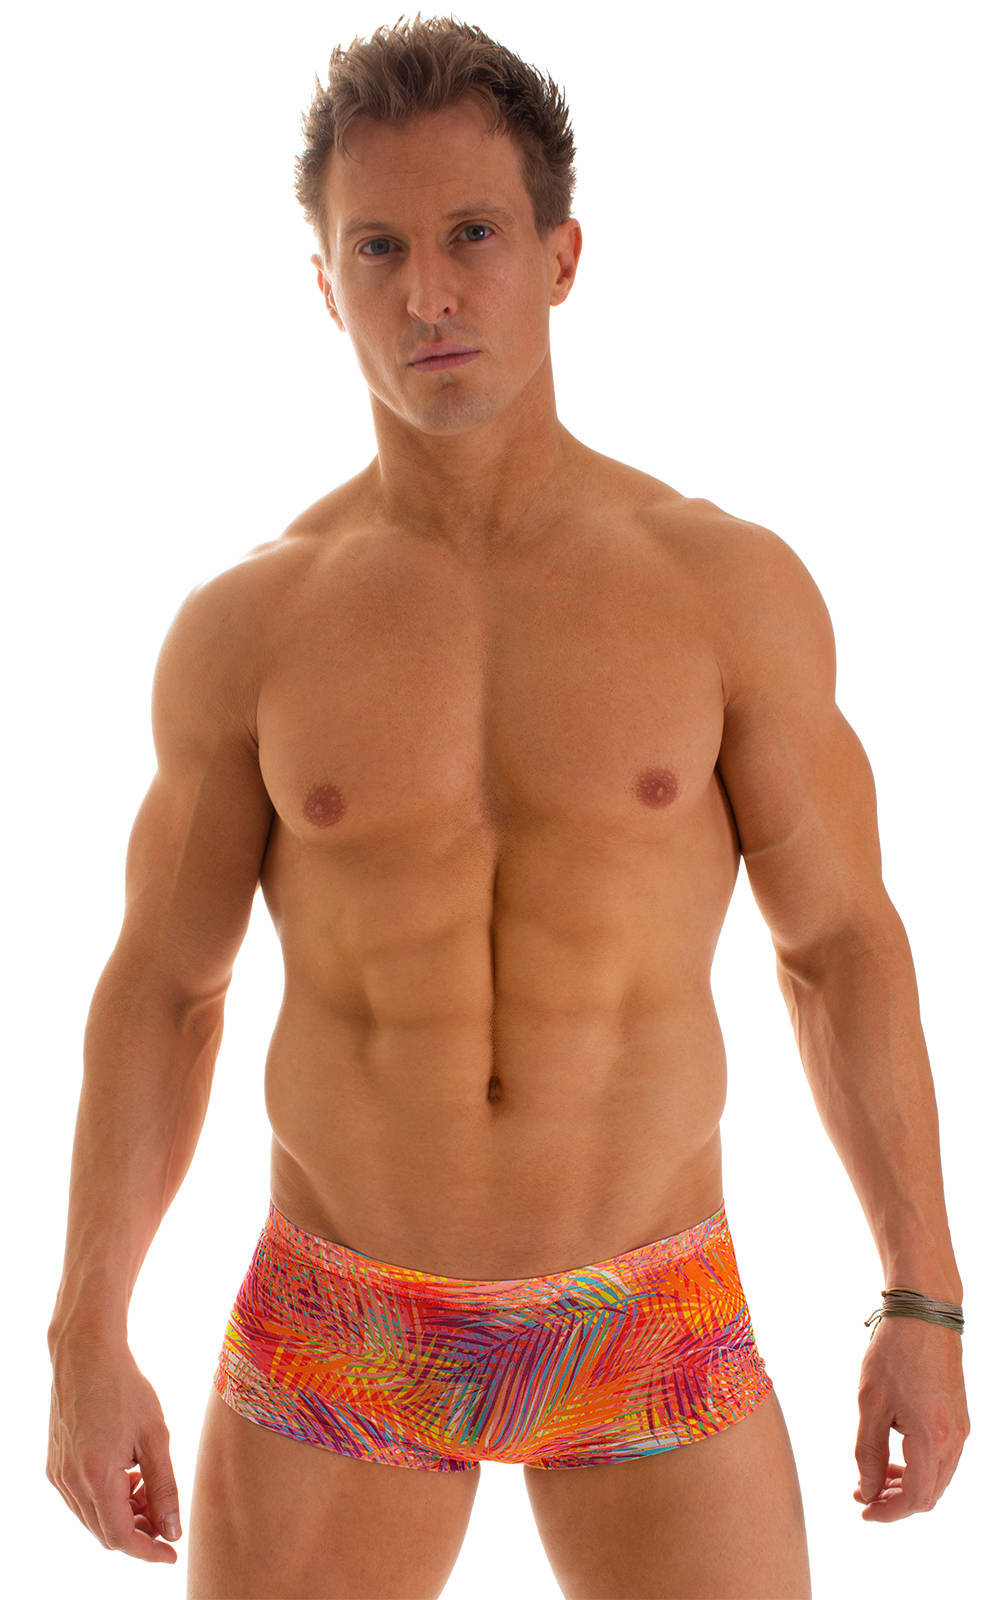 Extreme Low Square Cut Swim Trunks in Tan Through Orange Jungle 1